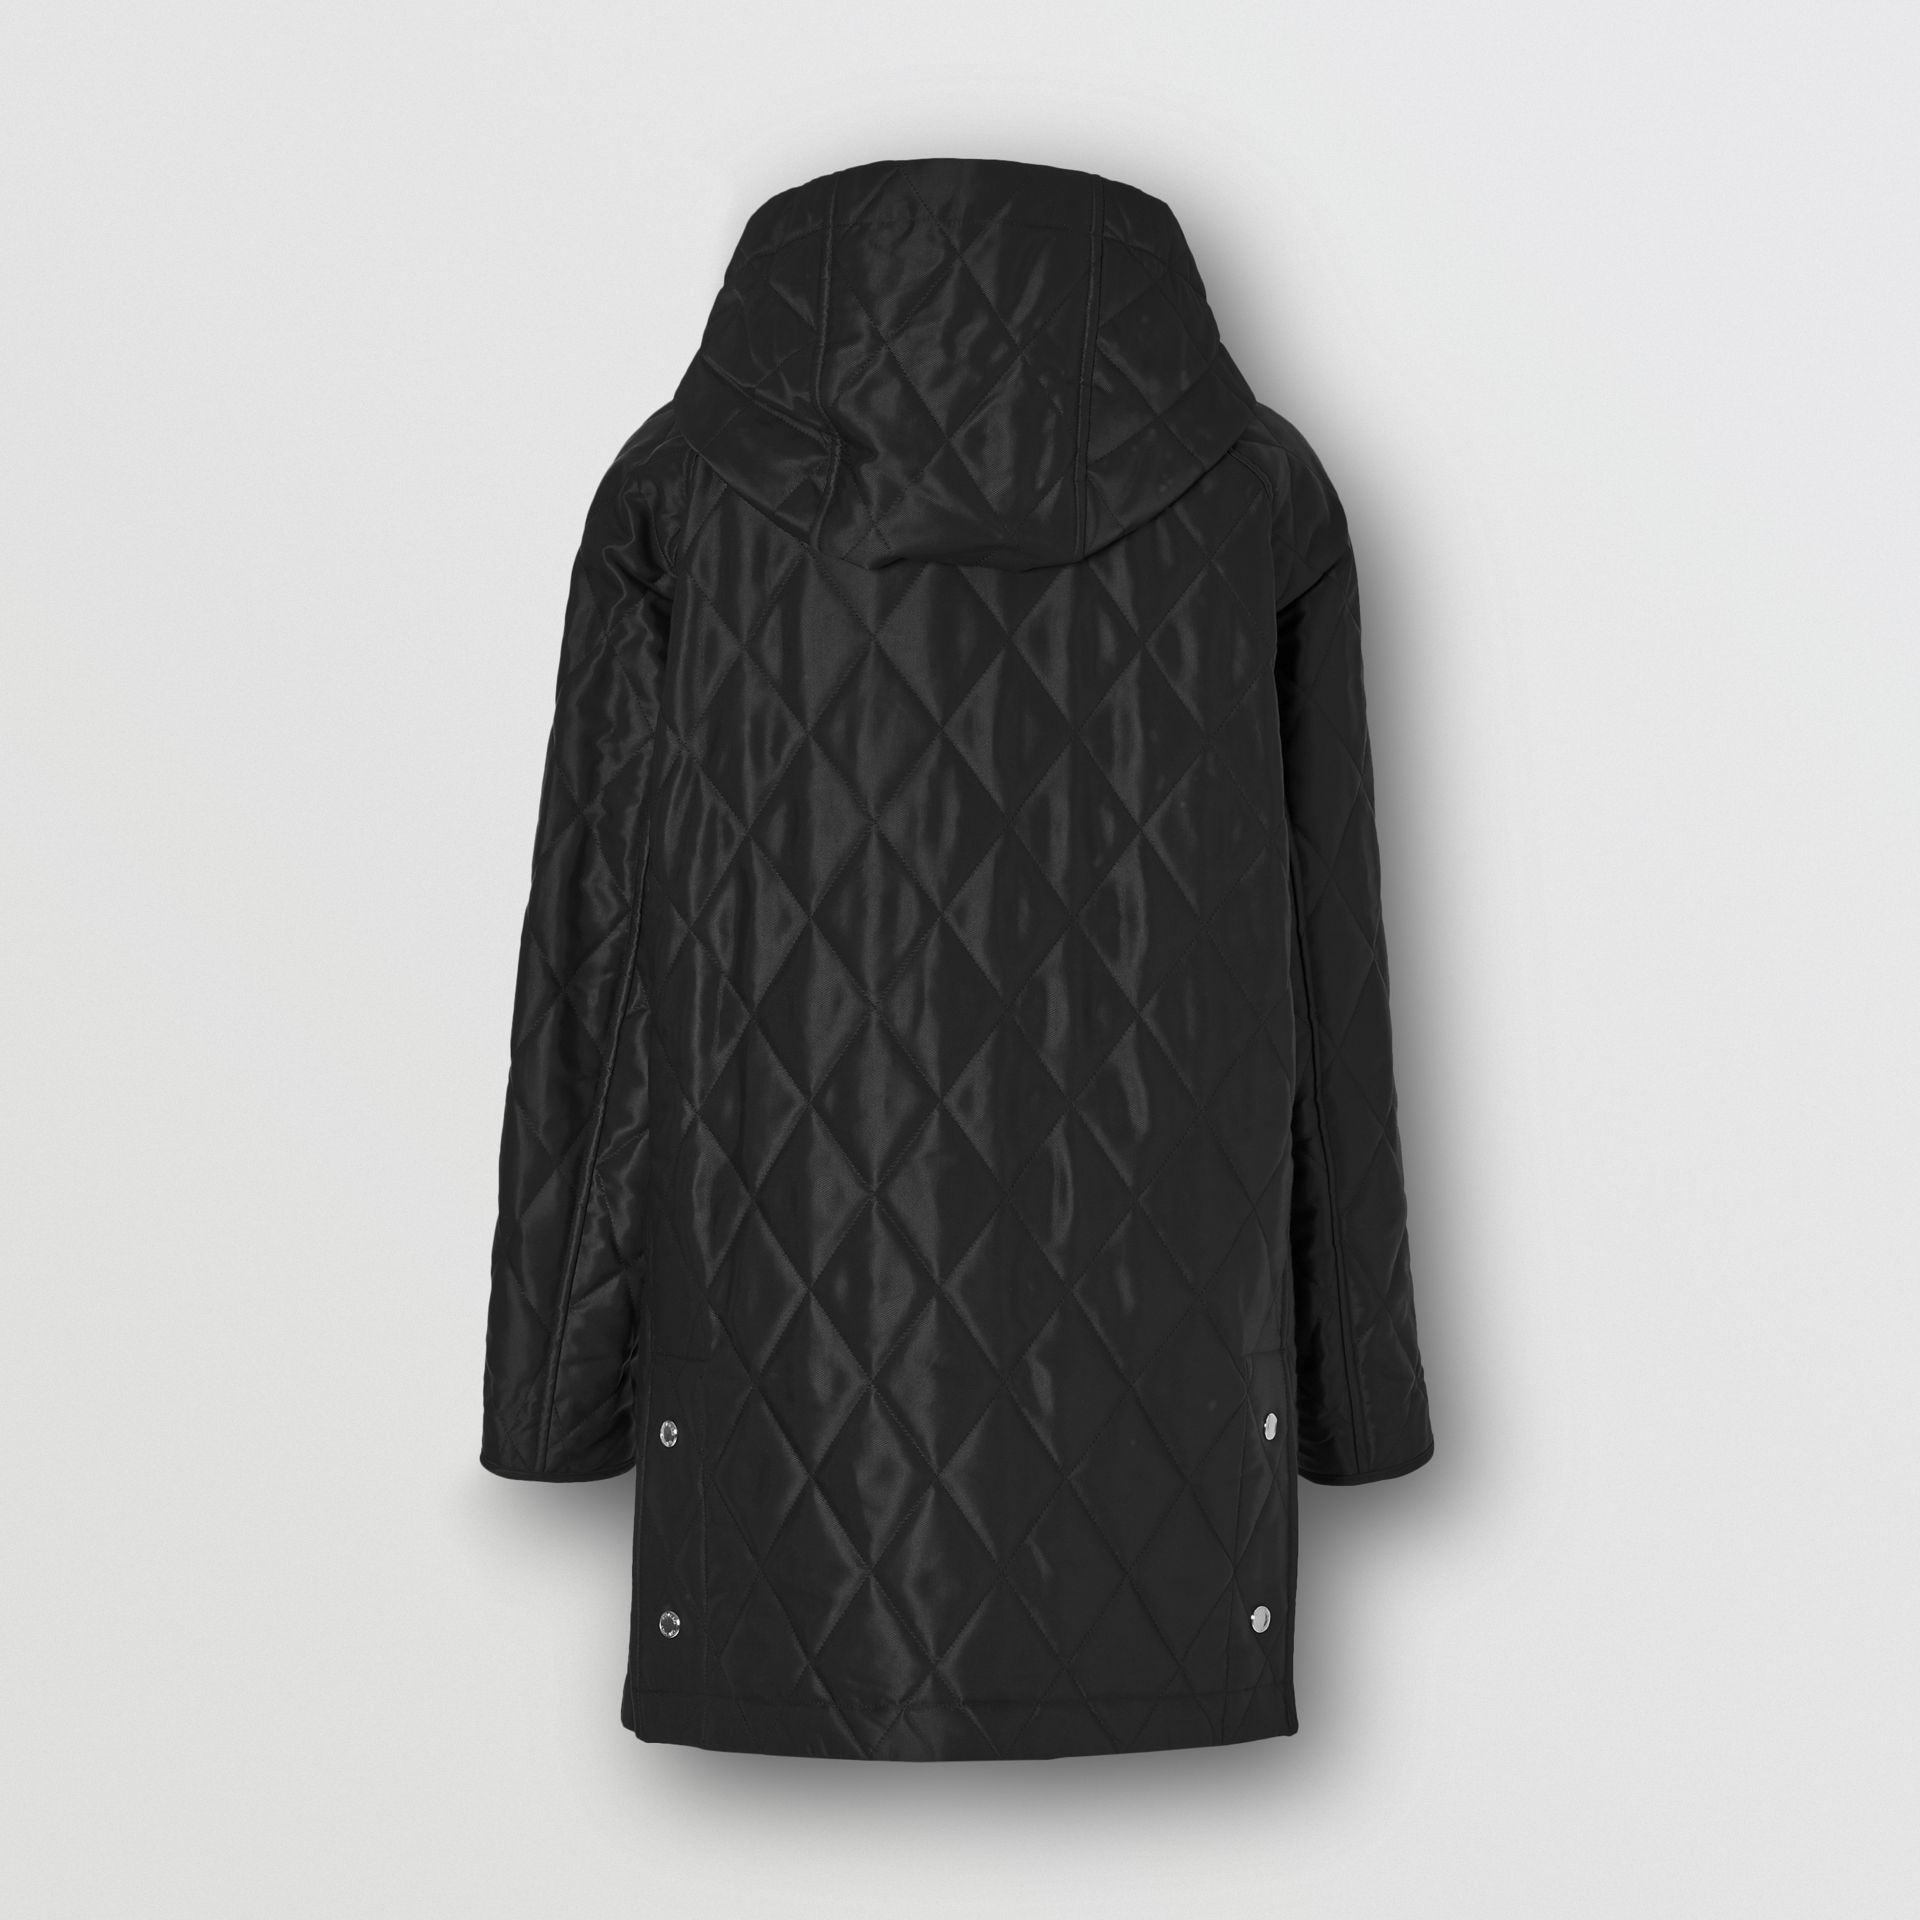 Diamond Quilted Cotton Blend Hooded Coat in Black - Women | Burberry - gallery image 6